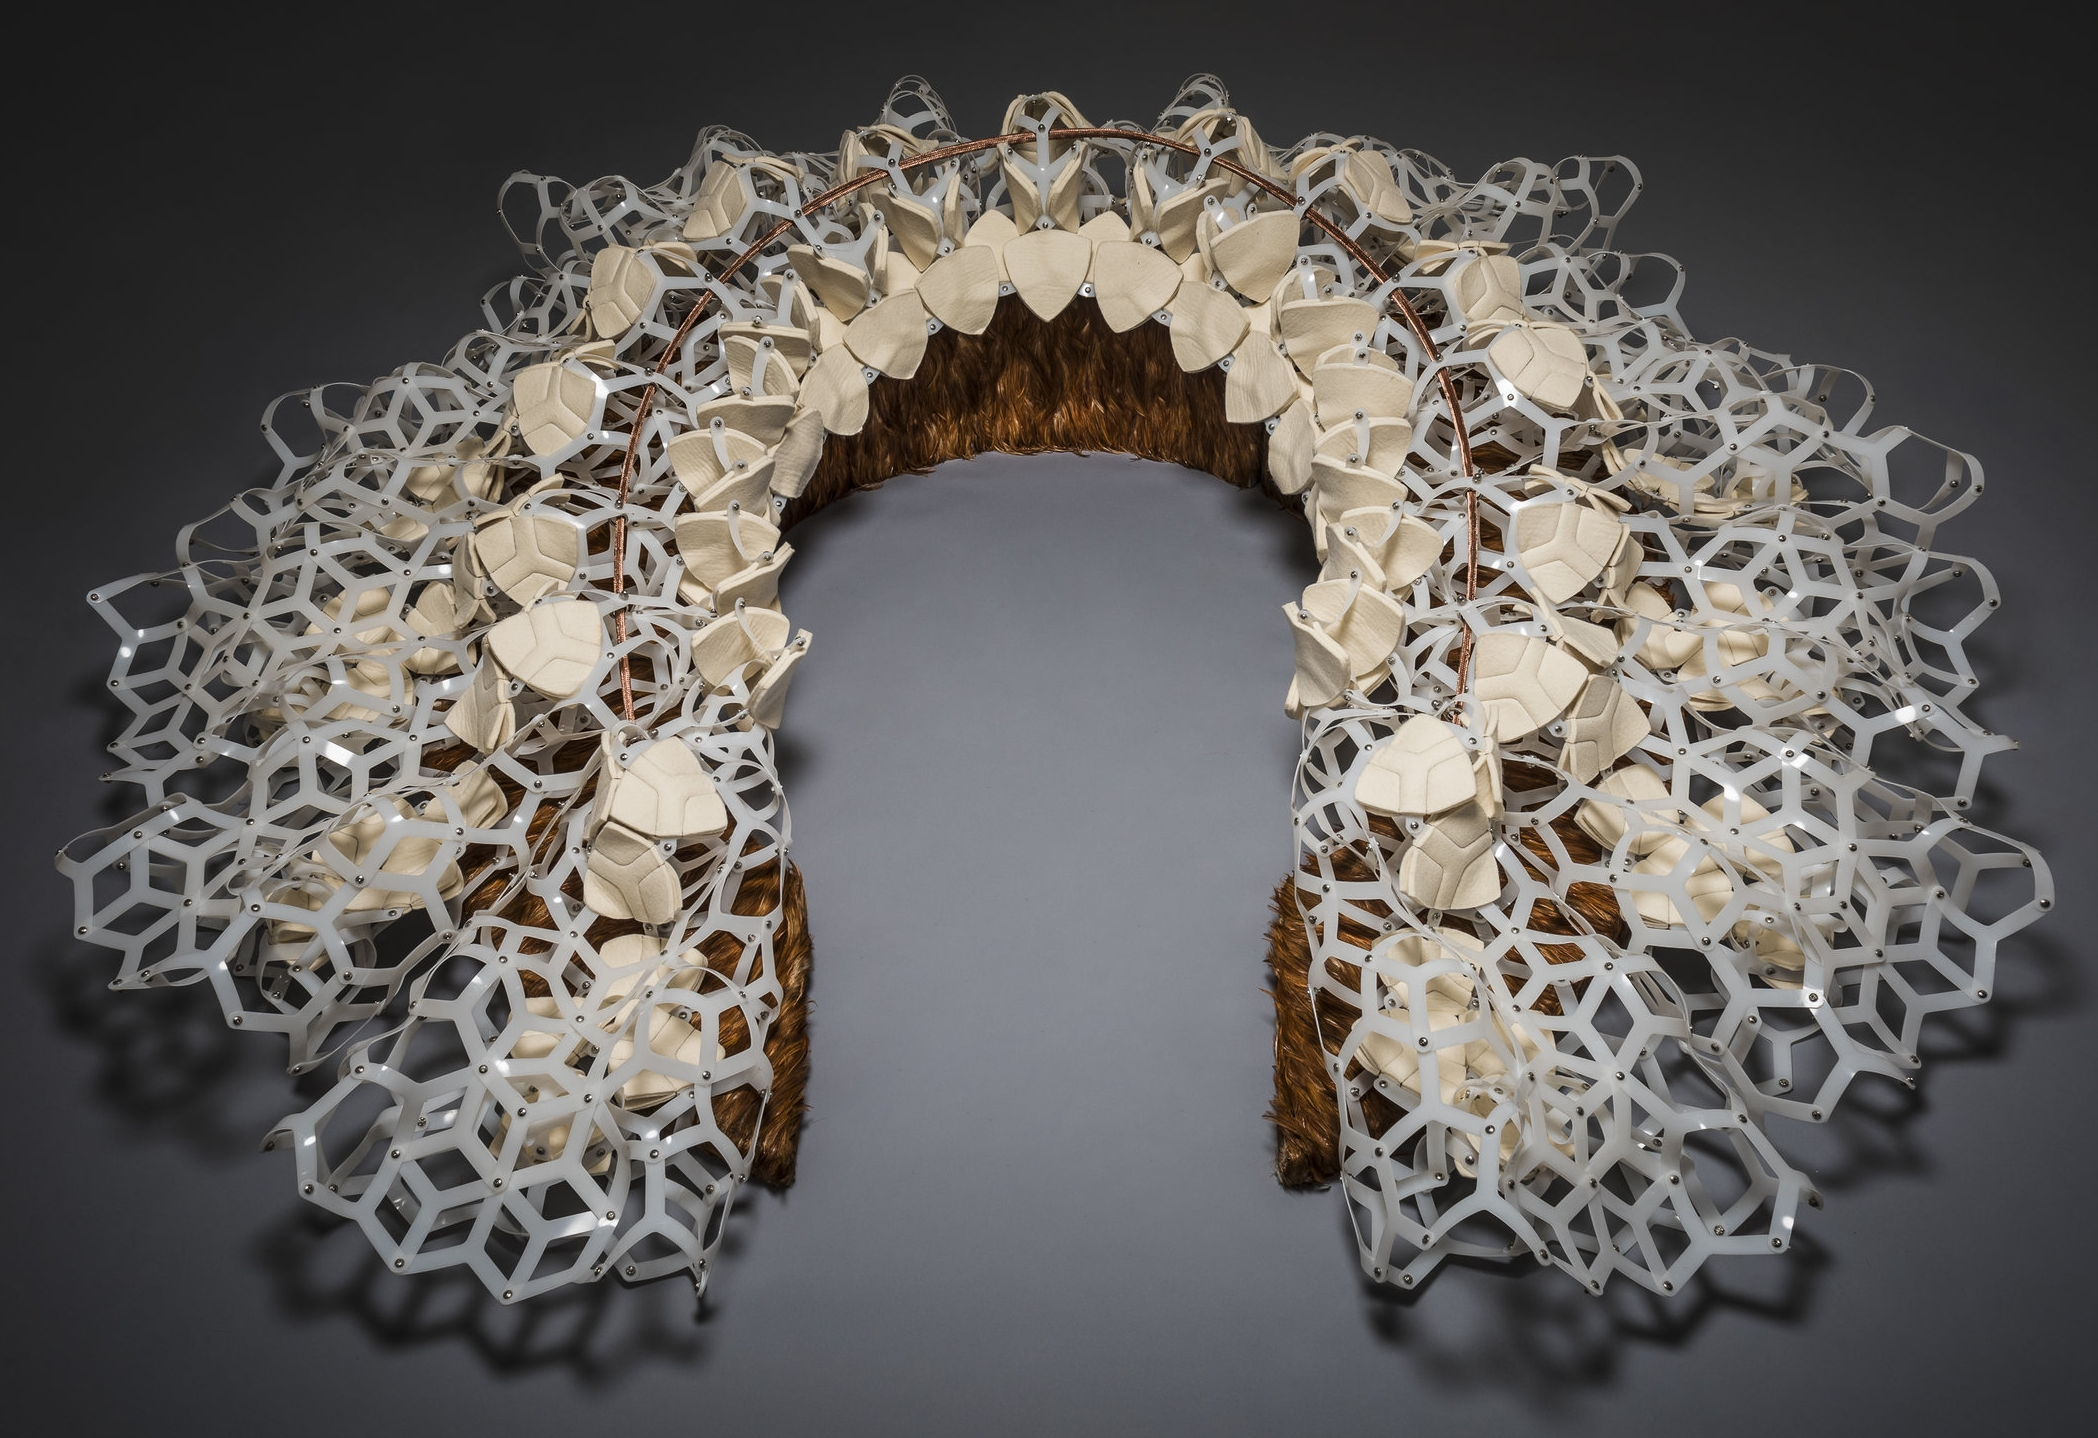 Lace artwork by Annet Couwenberg